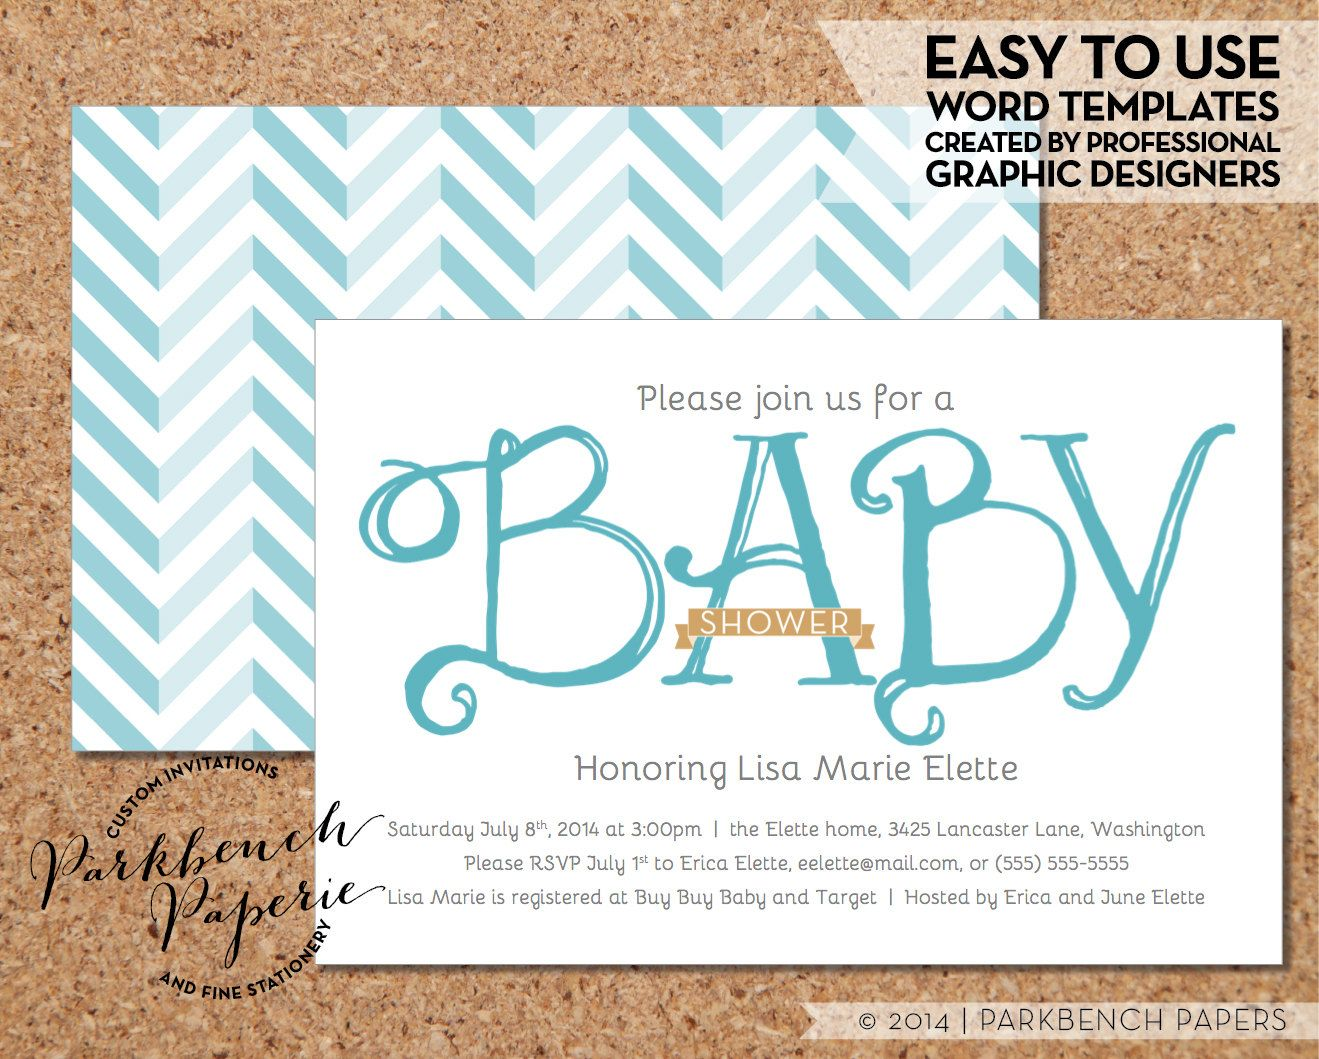 Baby Shower Invitations For Word Templates Impressive Baby Shower Invitation  Blue Ribbon  Diy Editable Word Template .